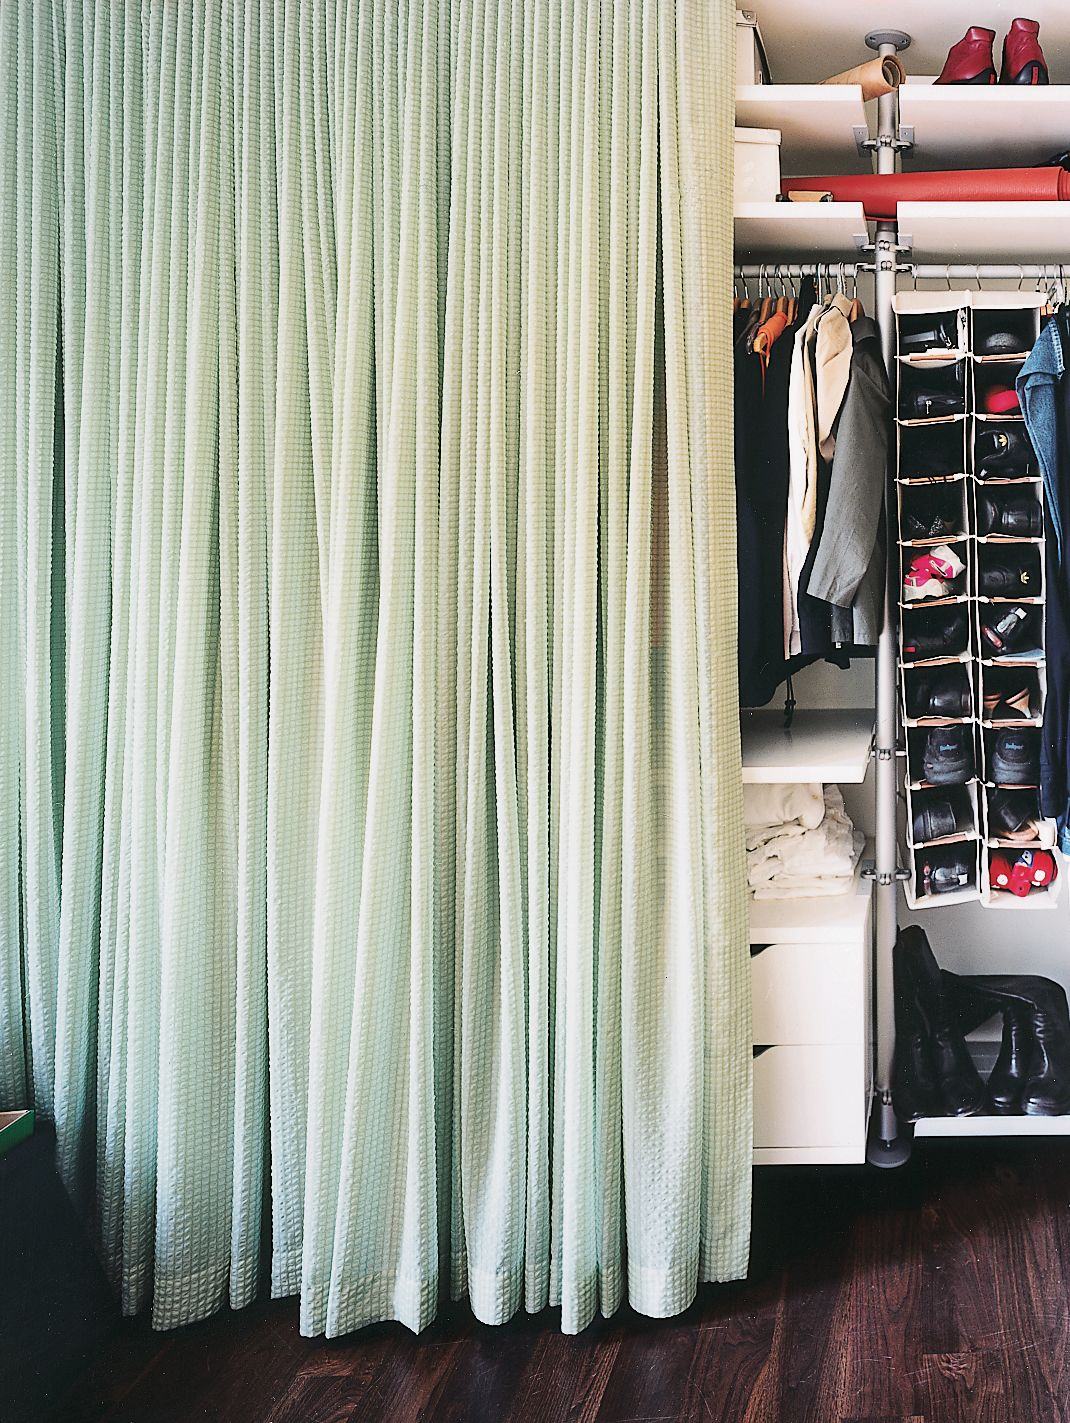 Wall-to-wall closet concealed by curtains